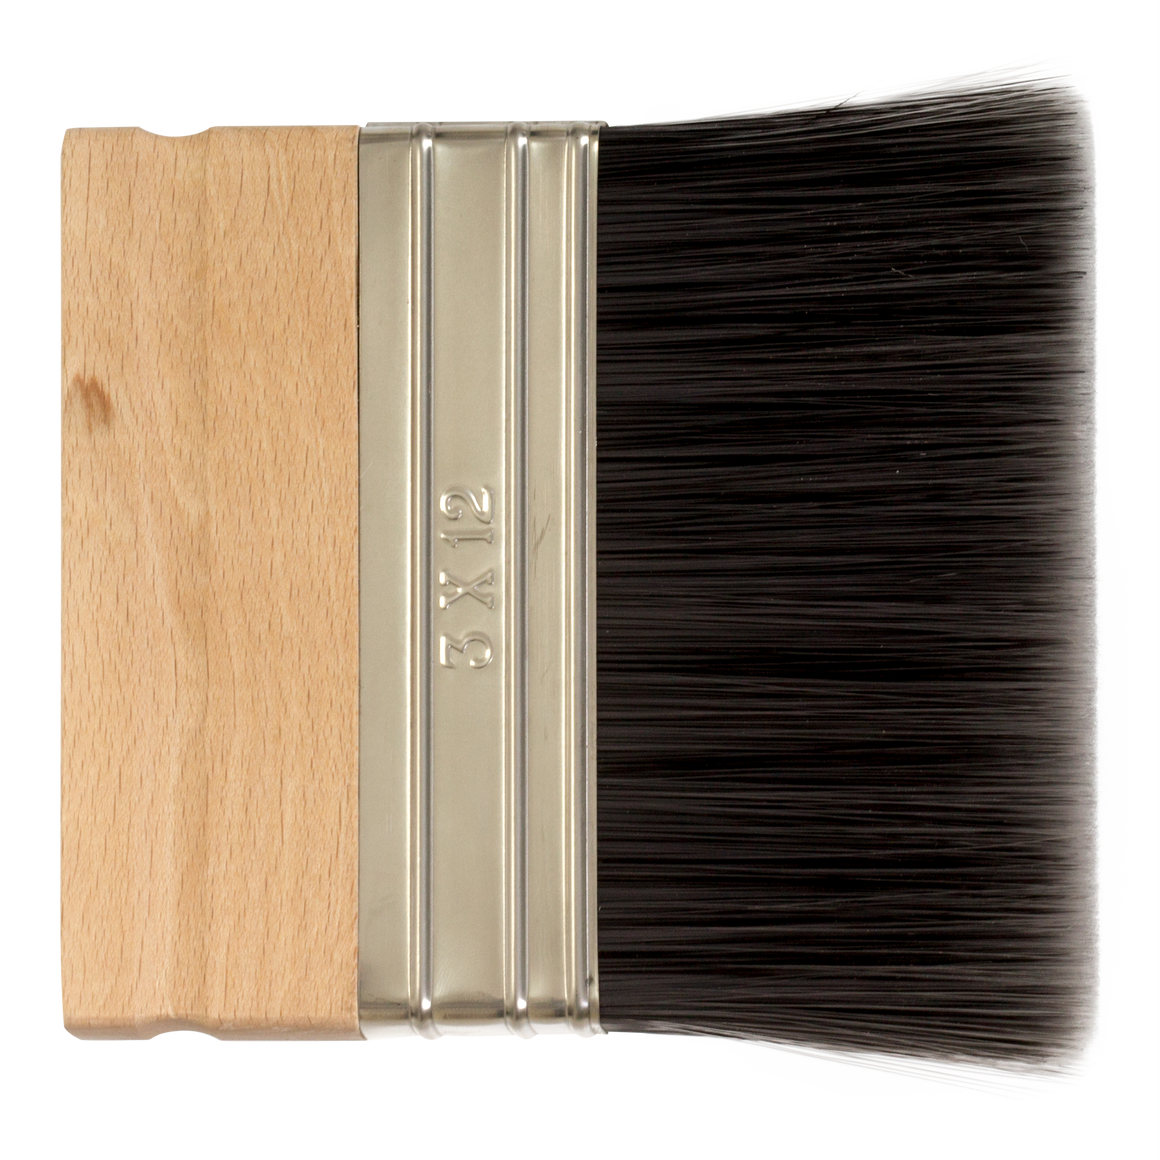 Autentico Venice Flat Application Brush, 30mm x 120mm